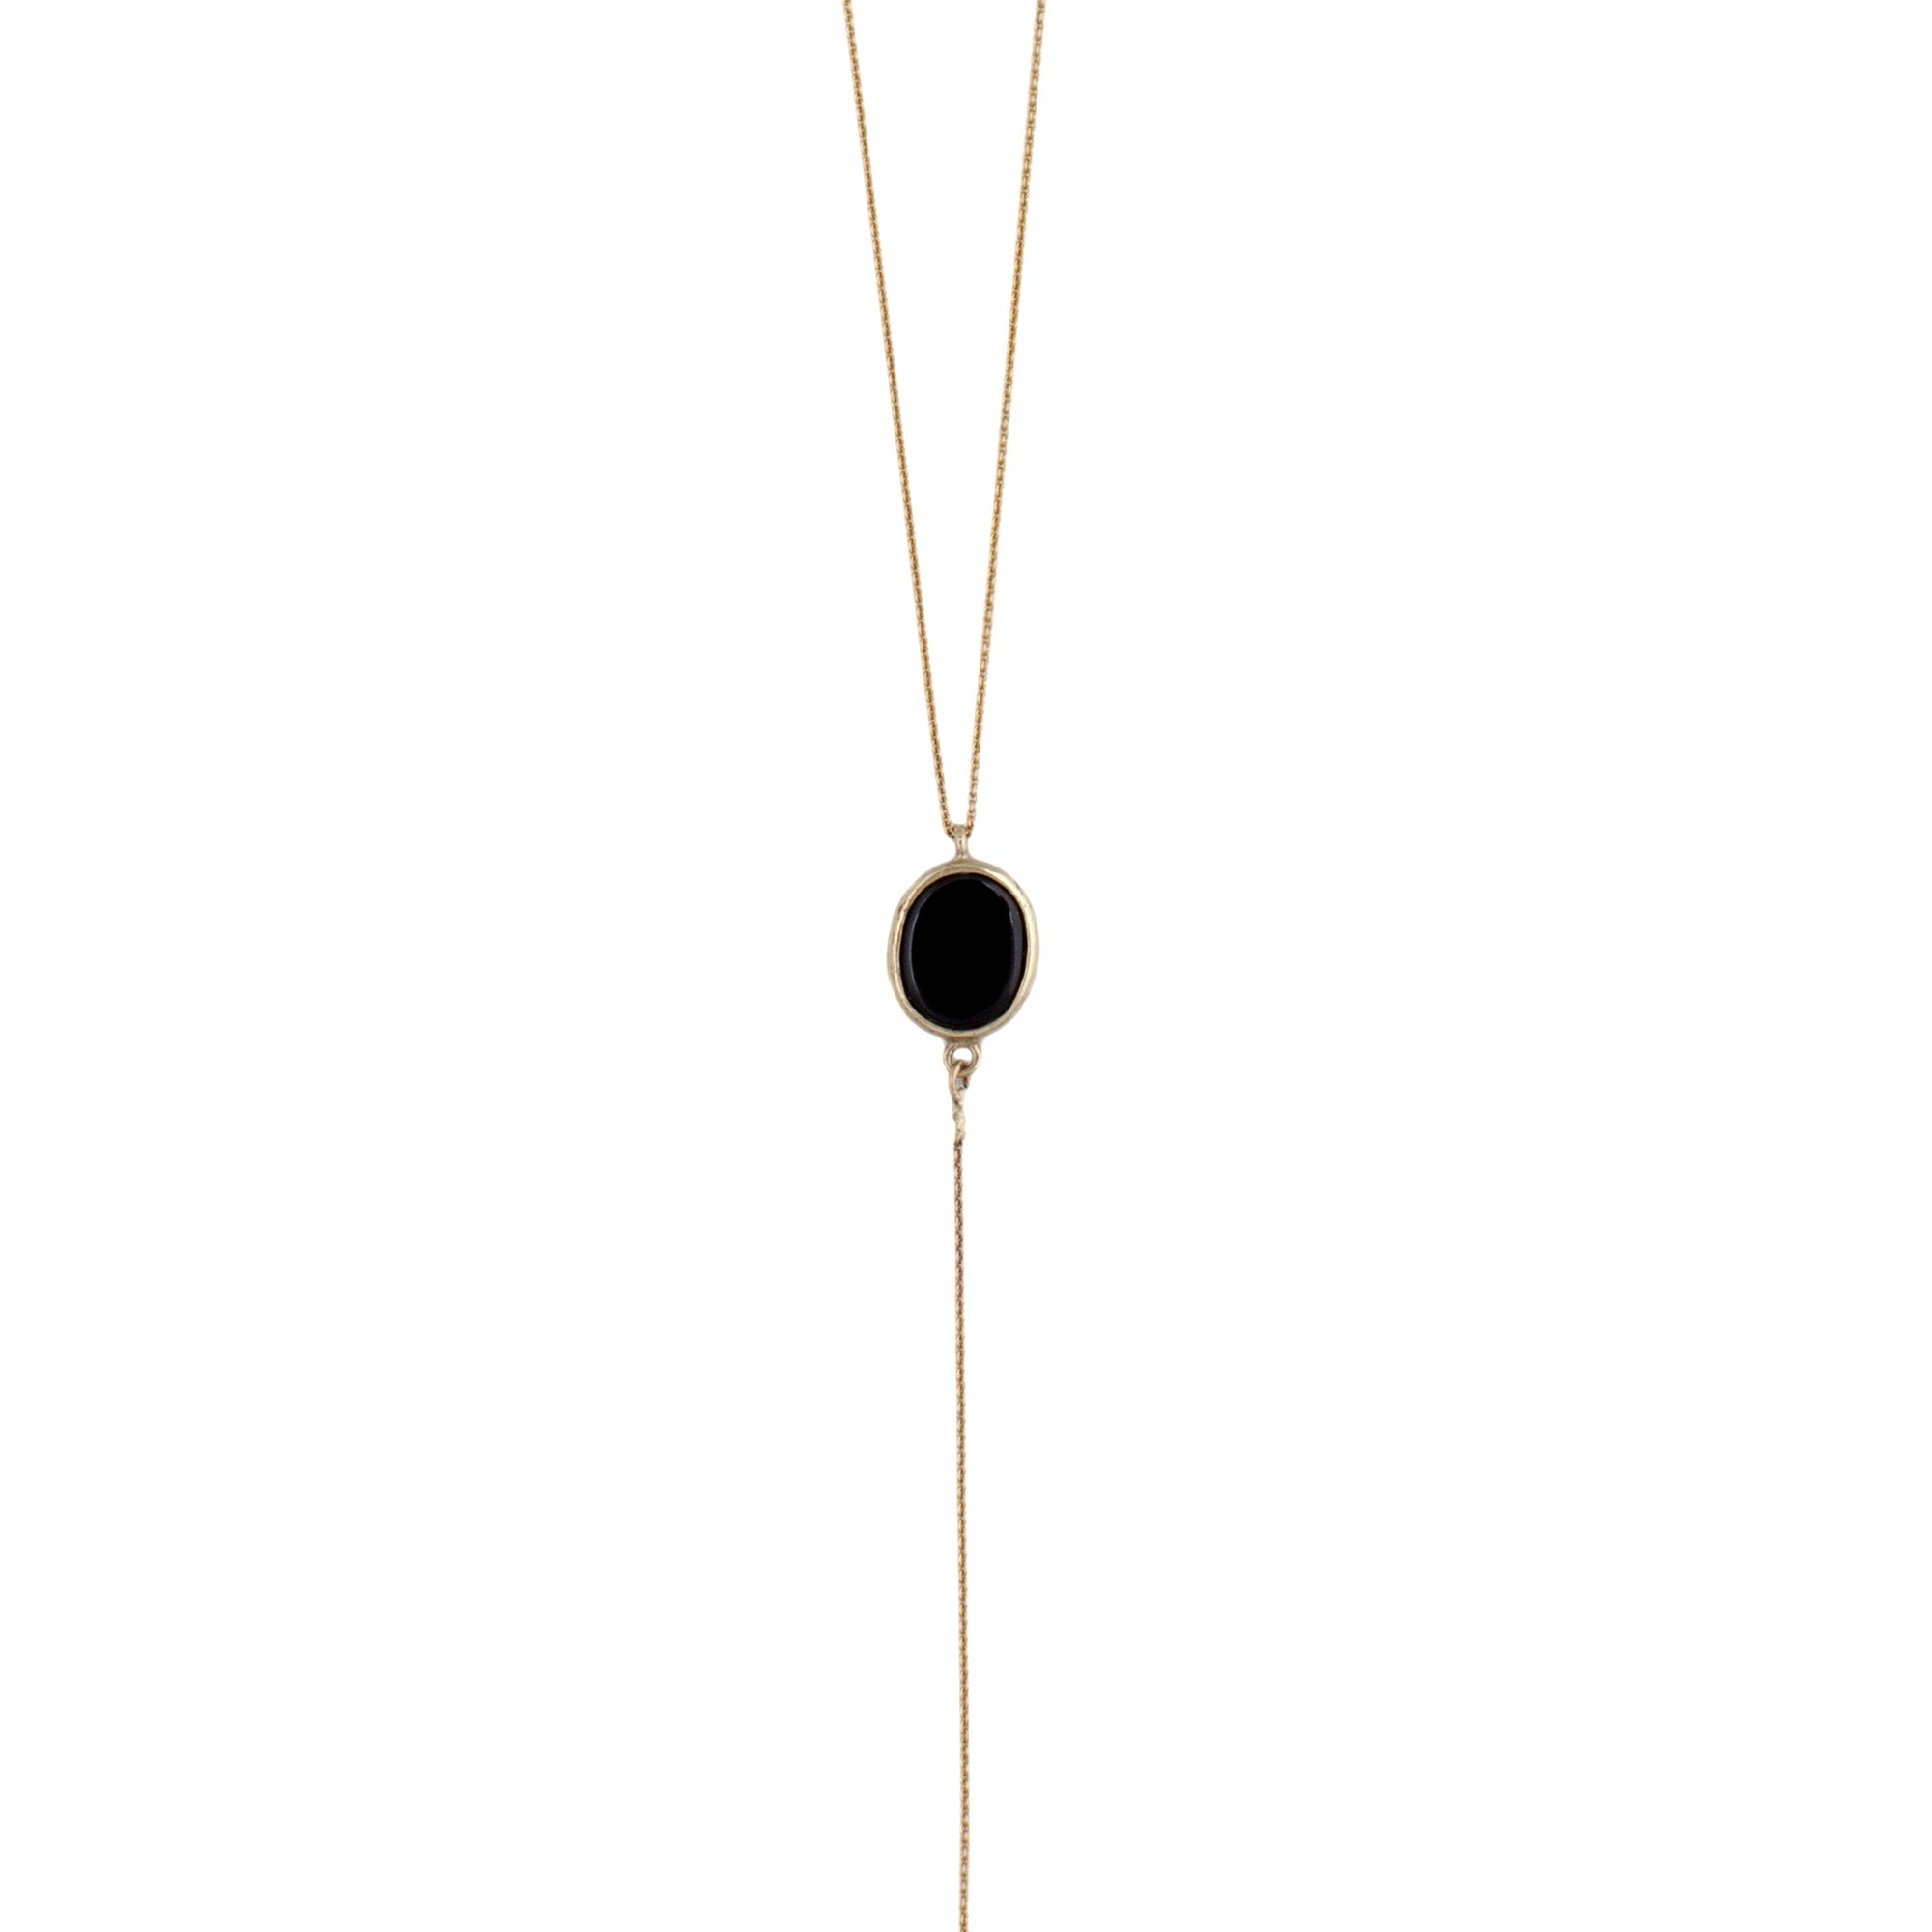 14K gold Necktie Necklace with stone pendant